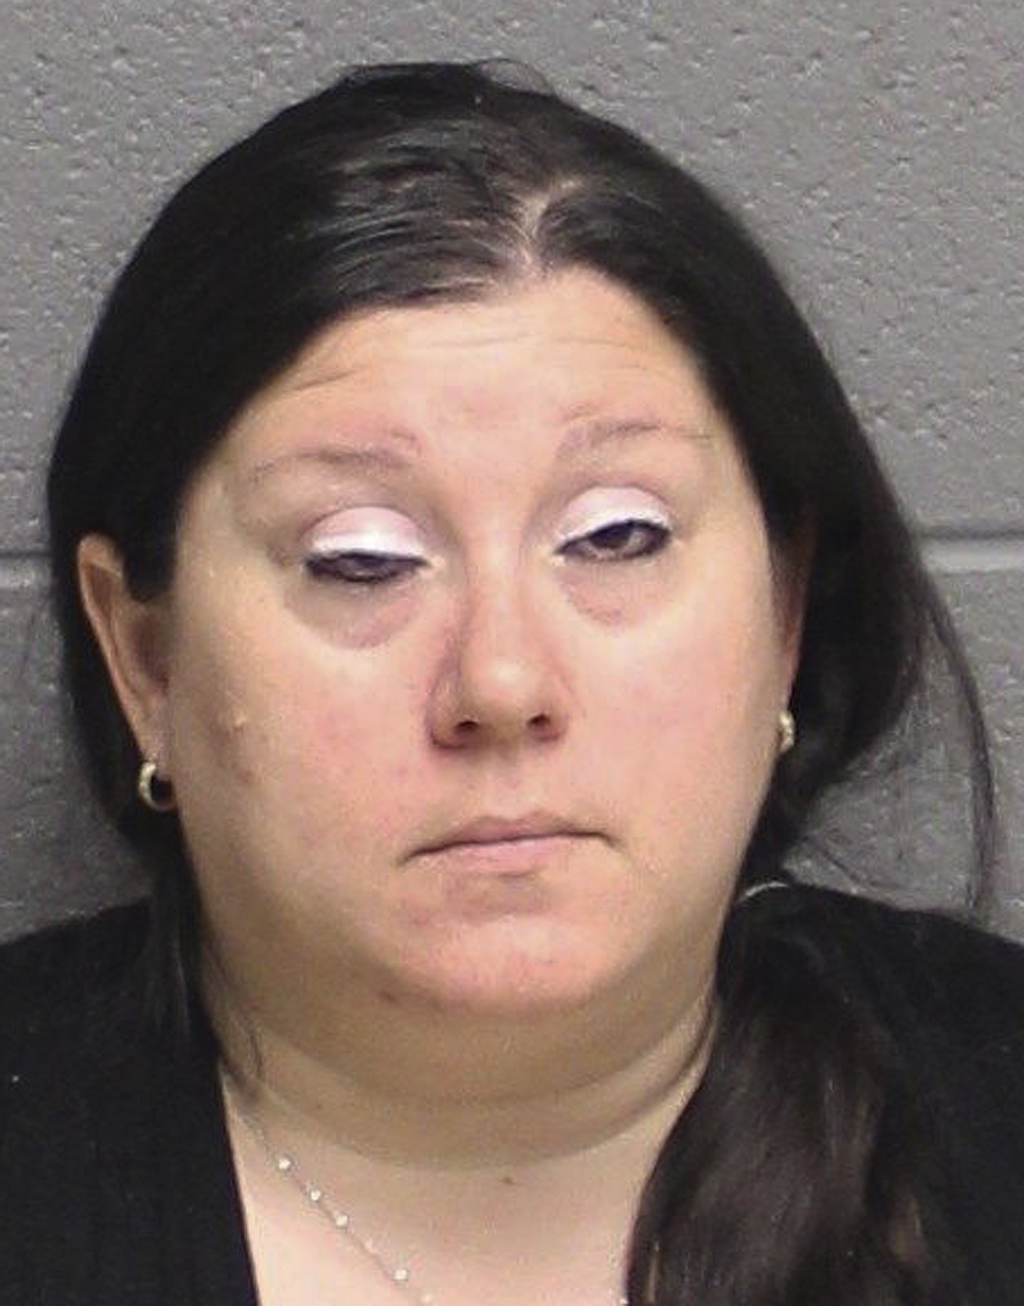 This undated booking photograph provided by the Monroe, Conn., Police Department shows Lisa Nussbaum, arrested and charged Friday, Marc...